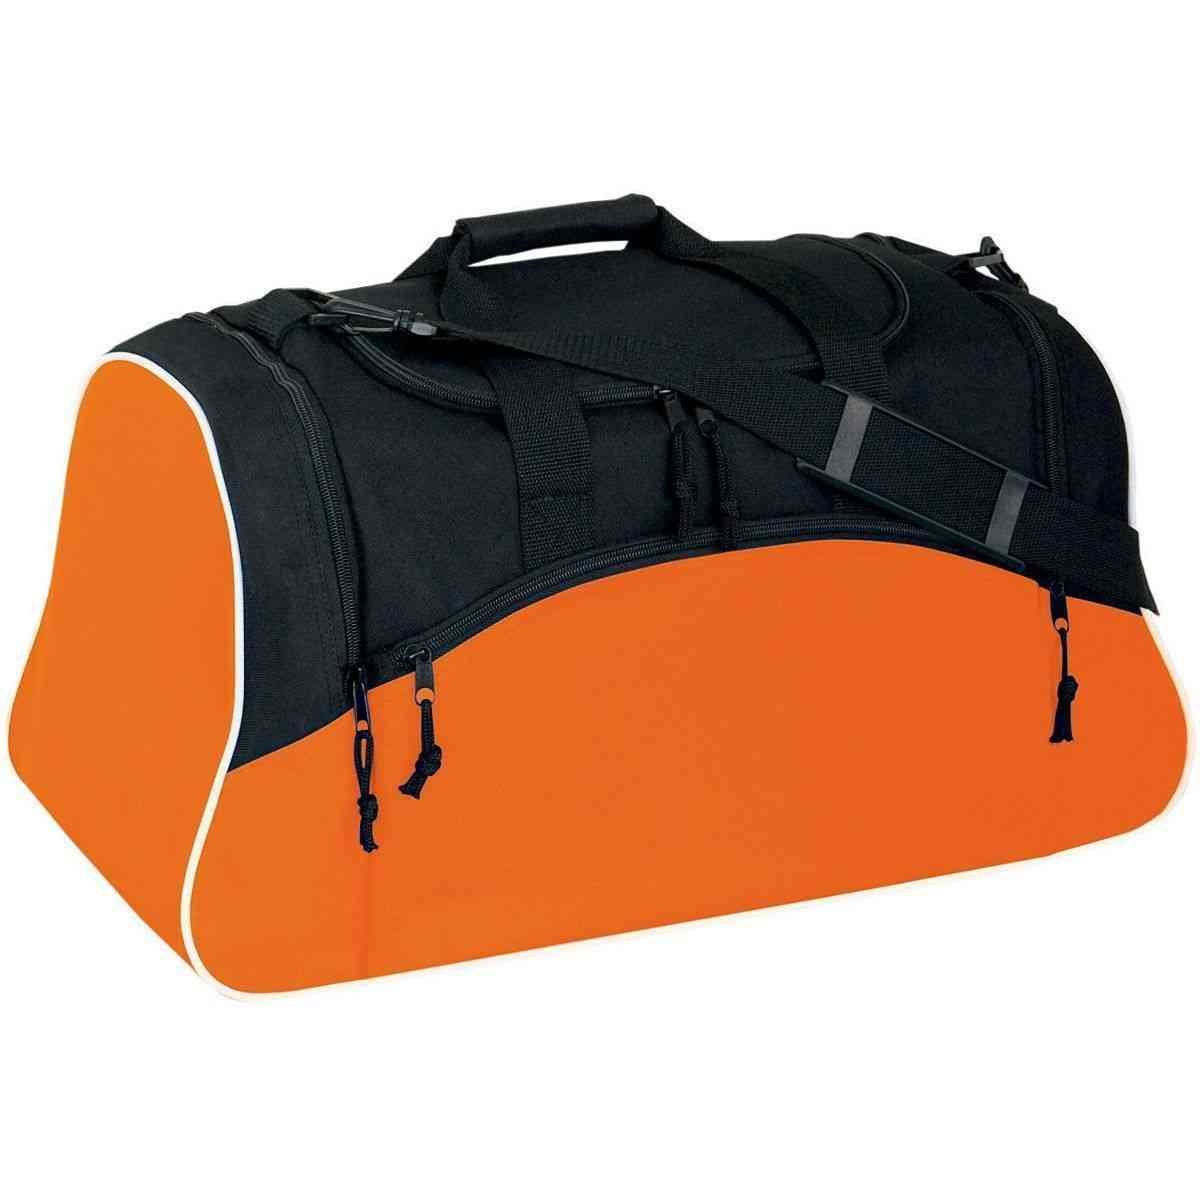 High Five Athletic Sports Bag, Adjustable Double Handle Training